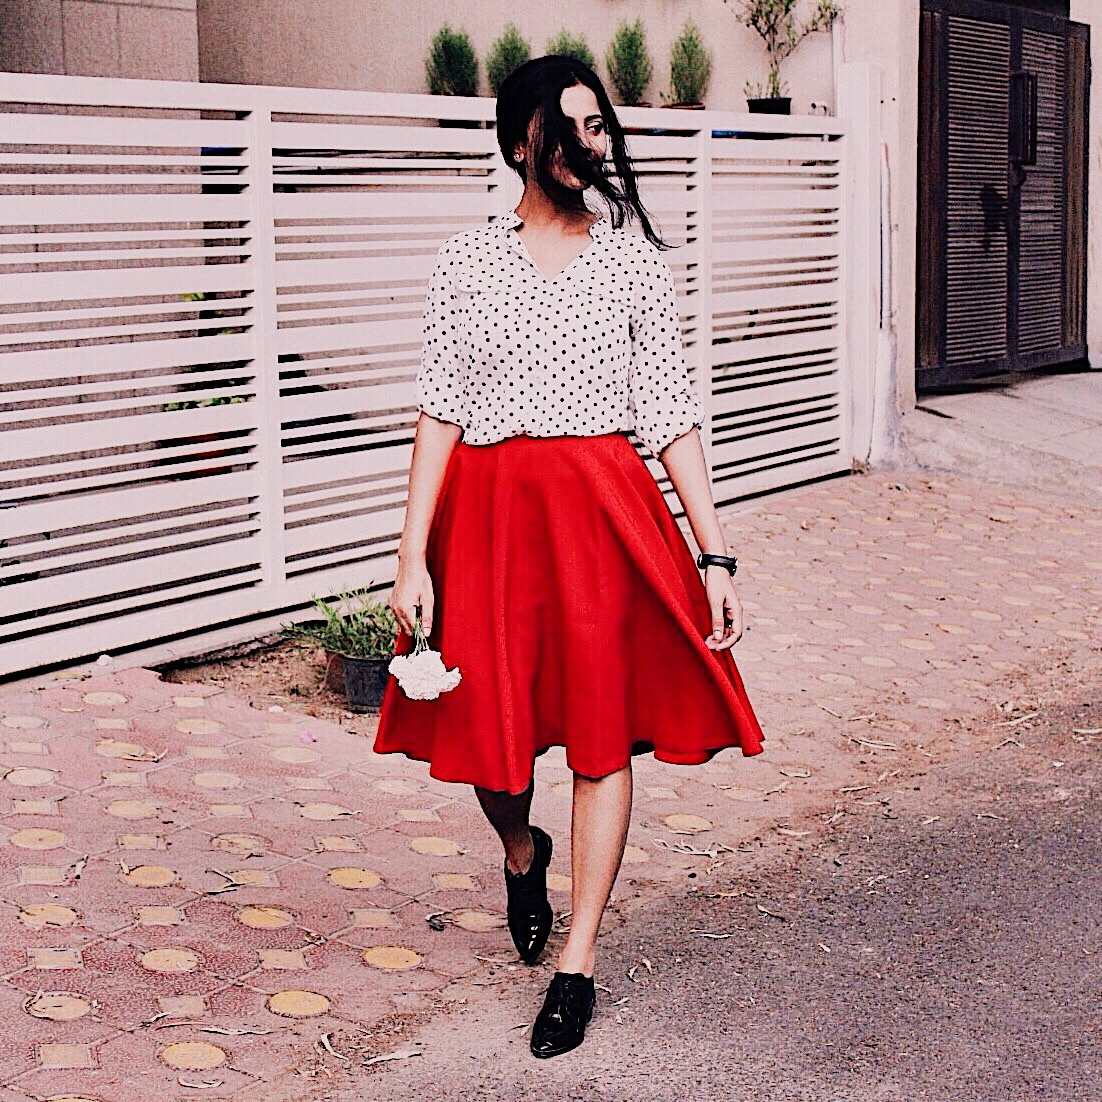 parisian outfit, parisian style,french style,dress like french women,effortless chic,masculine vibe,wear masculine pieces,red skirt, wear midi skirt,polka dots, wear polka dots,vesper,asos outfit,decode parisian style, polka dot blouse, french colors, dress like a parisian, indian blogger, indian luxury blog, who what wear, top style blogger